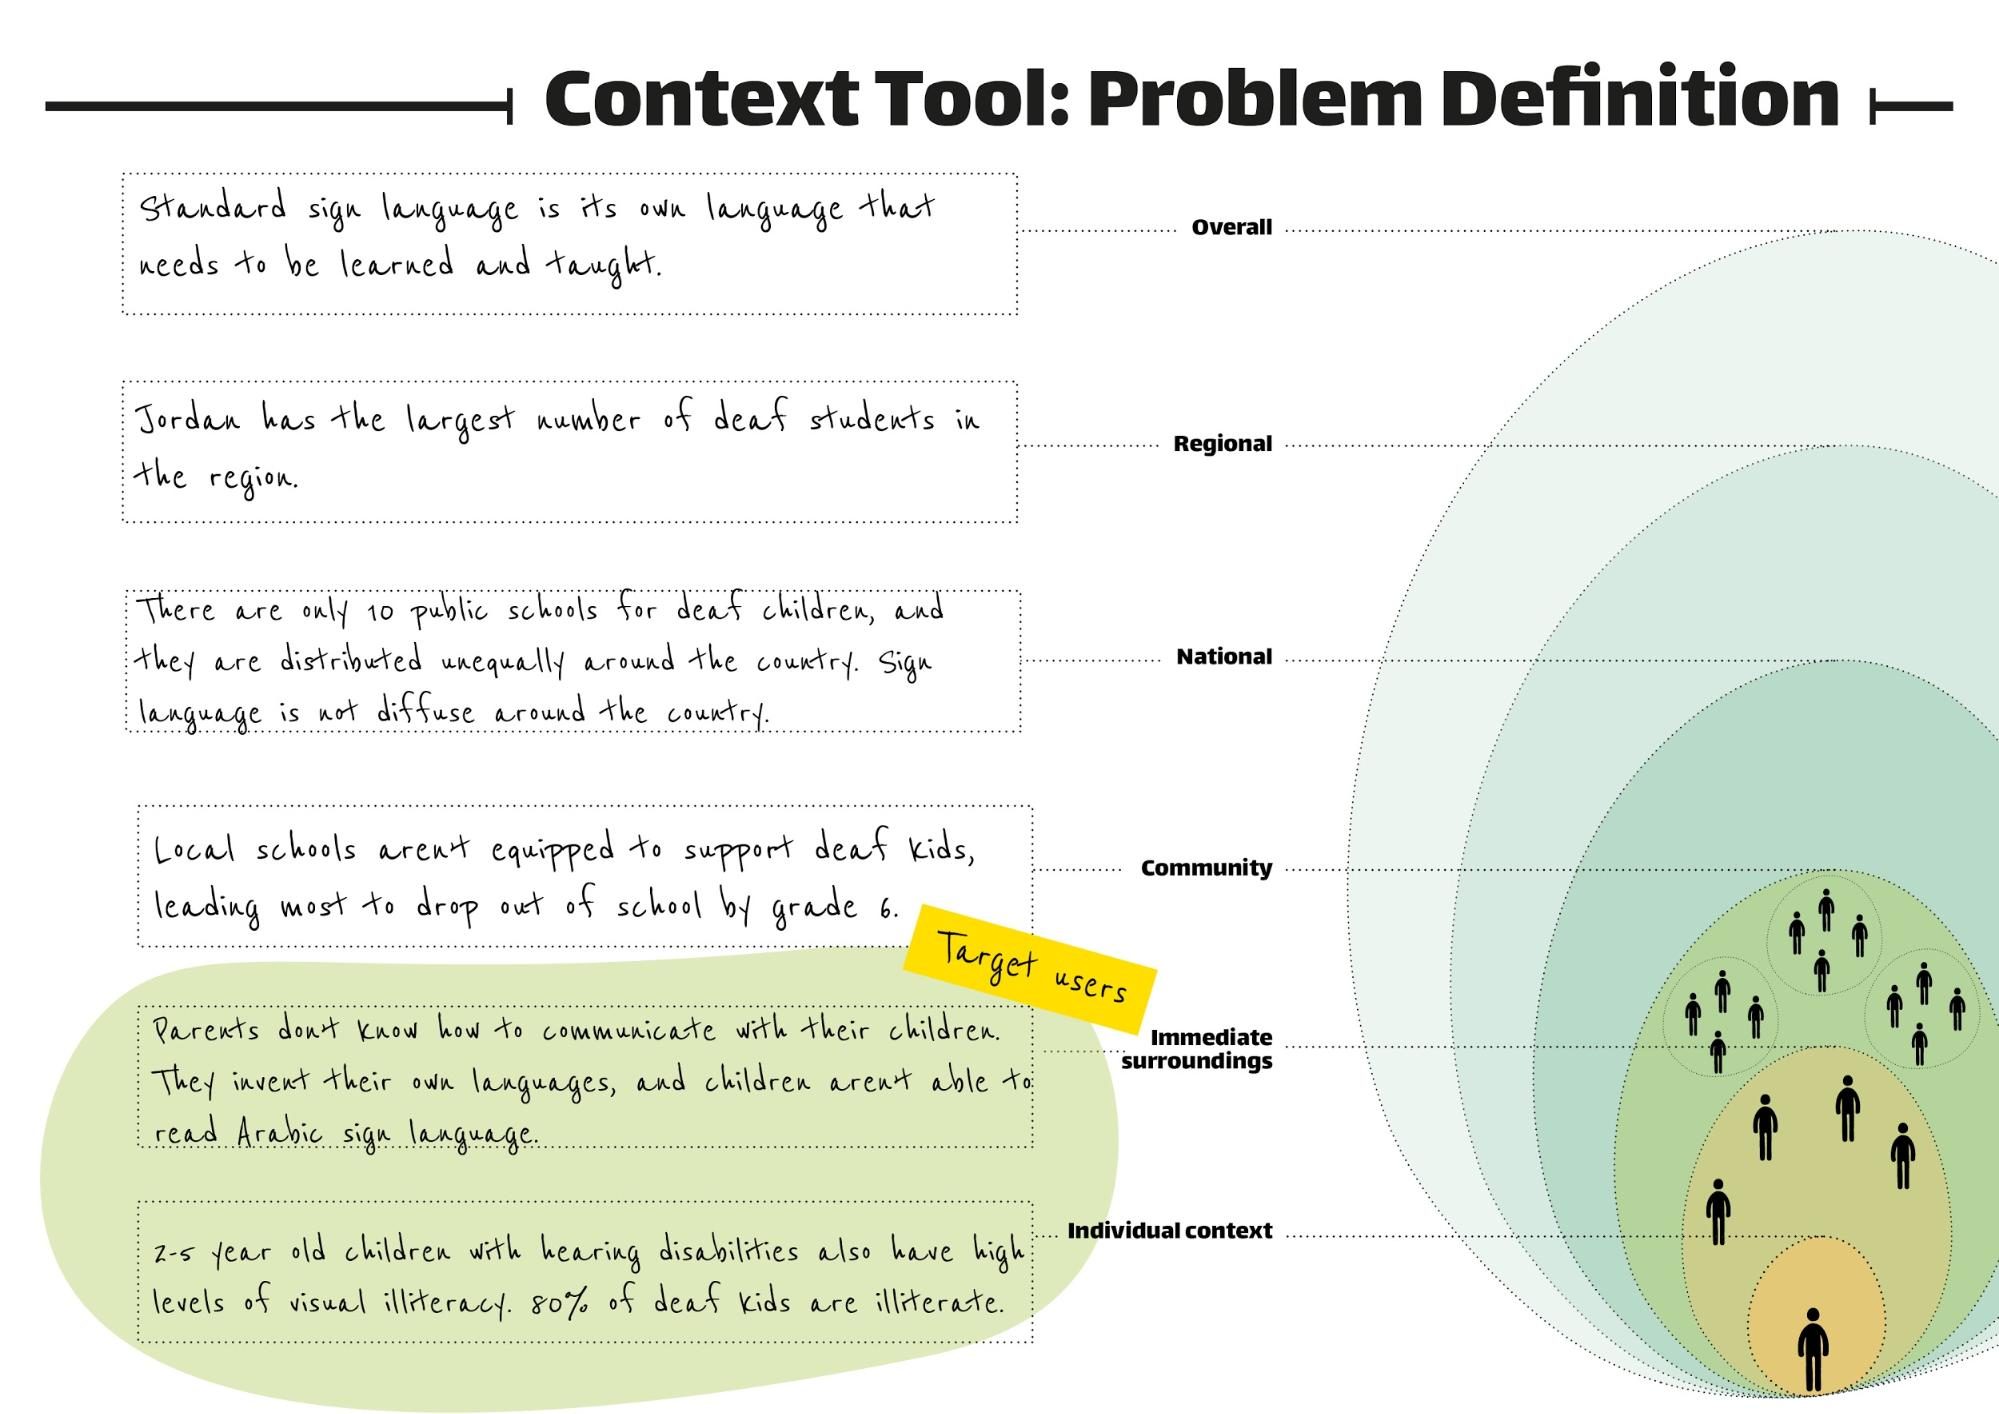 Context Tool: Problem Definition image